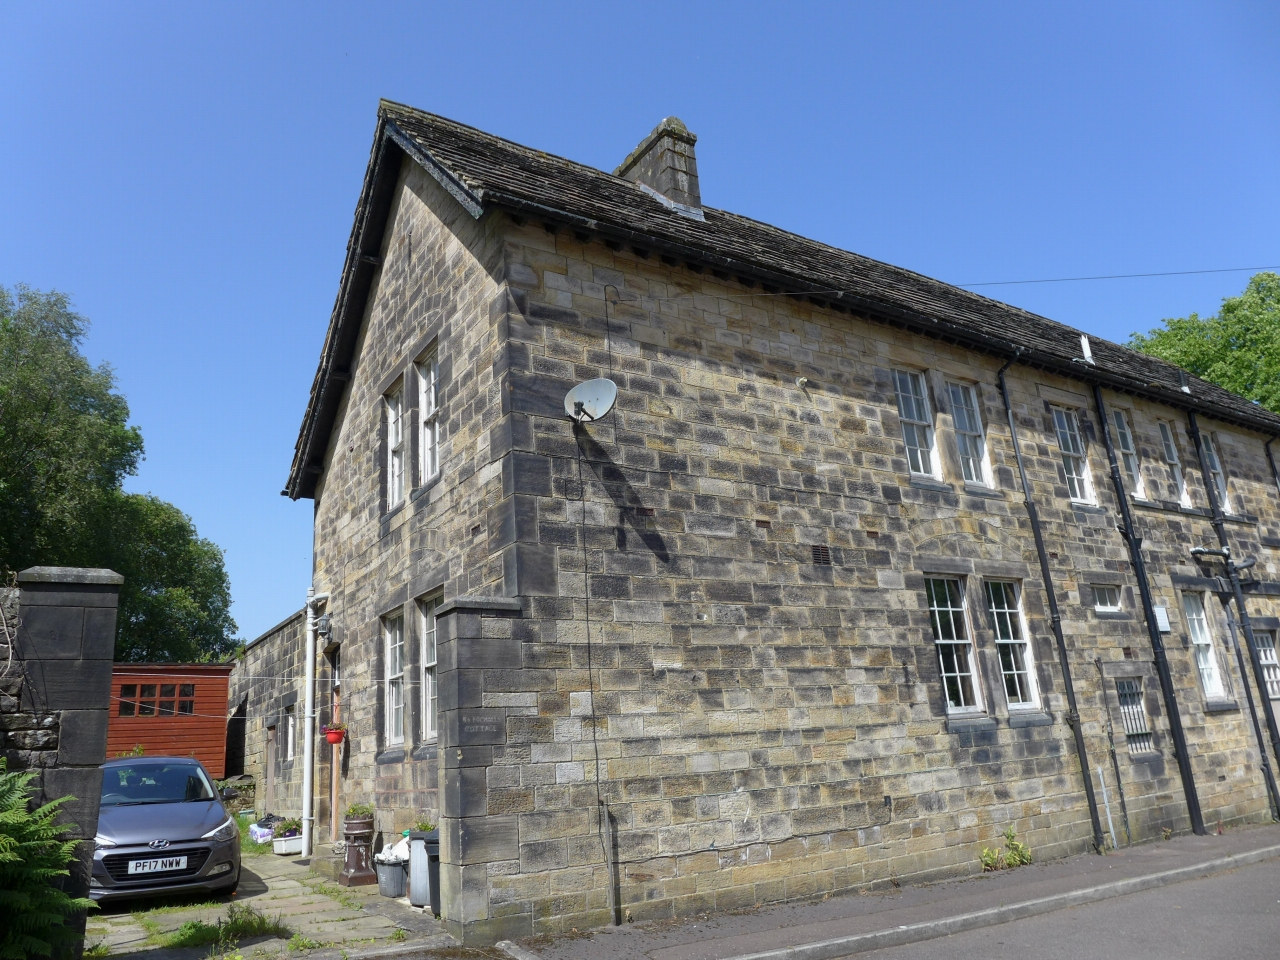 3 bedroom end terraced house For Sale in Calderdale - Photograph 12.